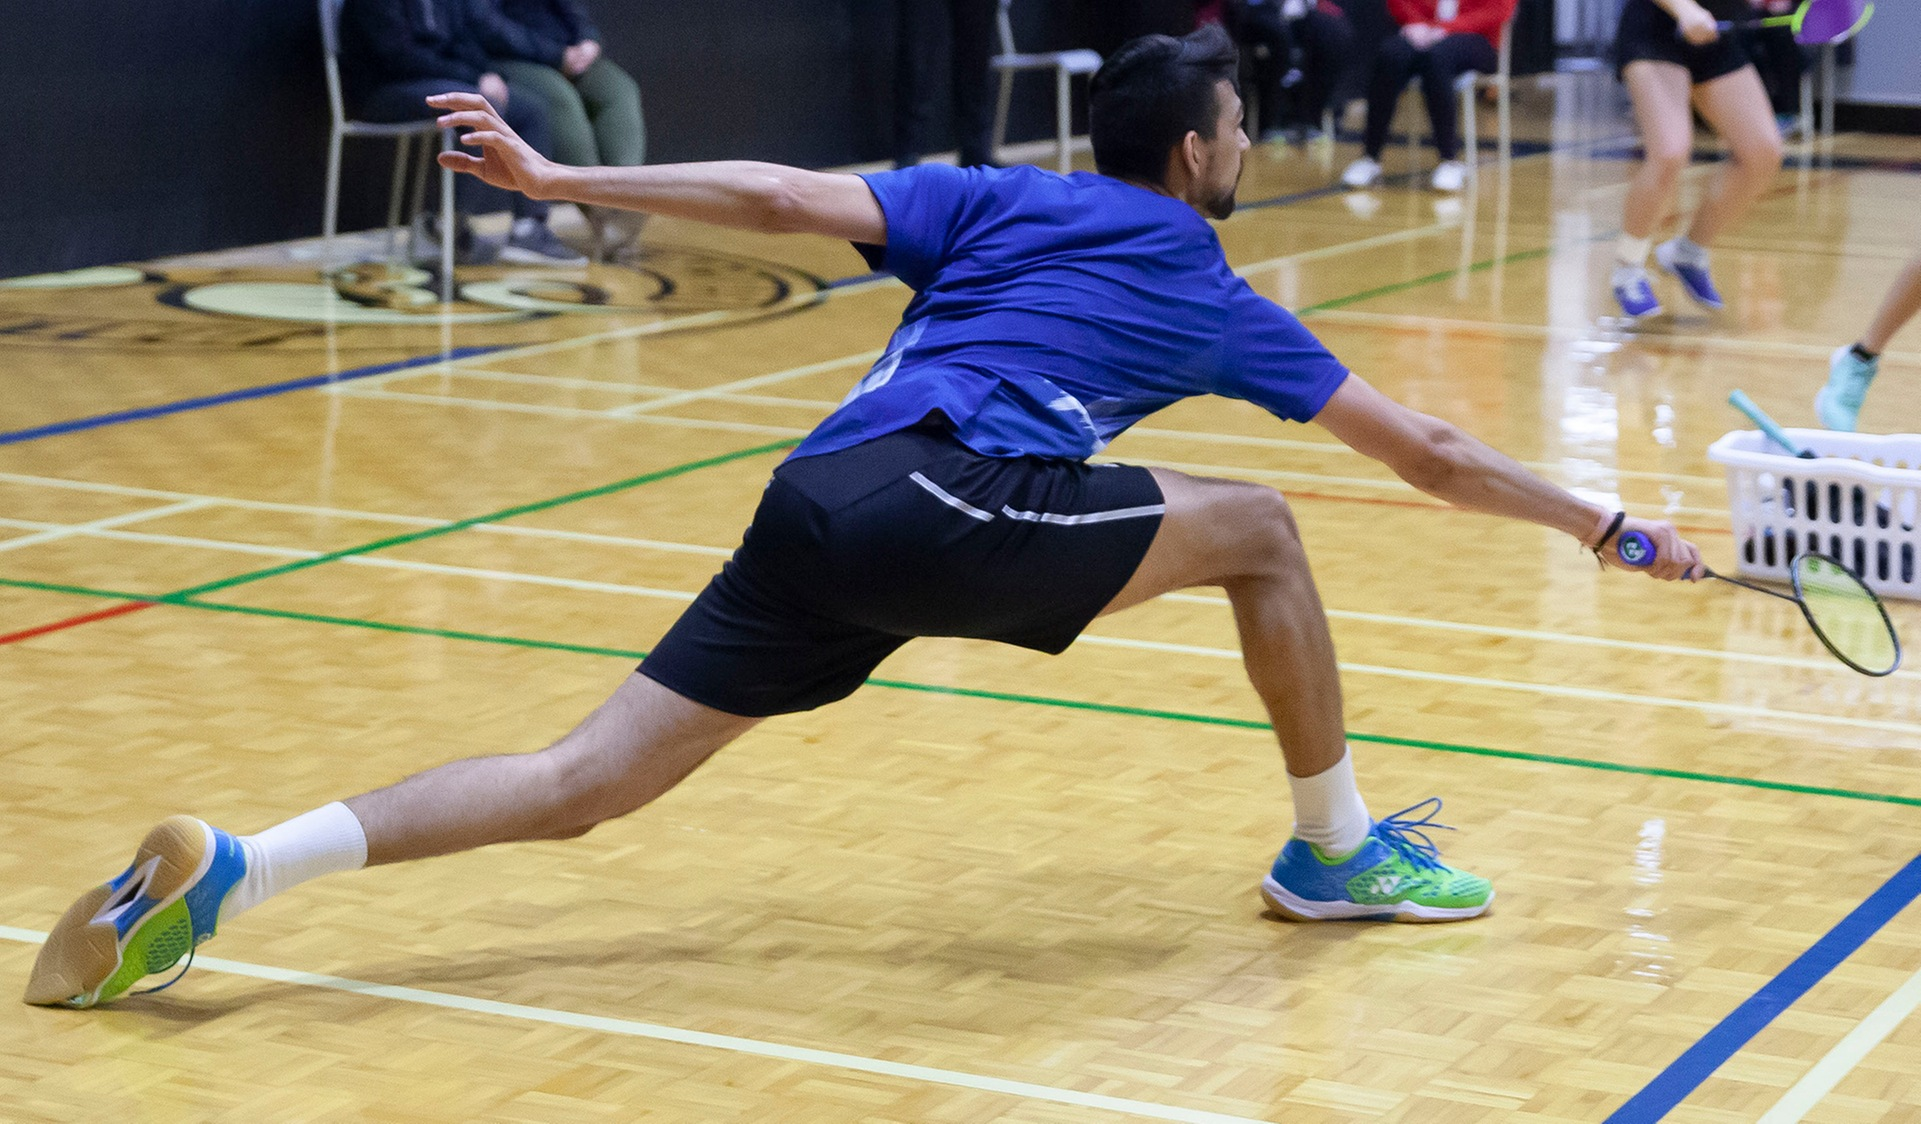 INJURED AND BATTERED KUMAR ADVANCES TO CCAA MEN'S SINGLES GOLD MATCH